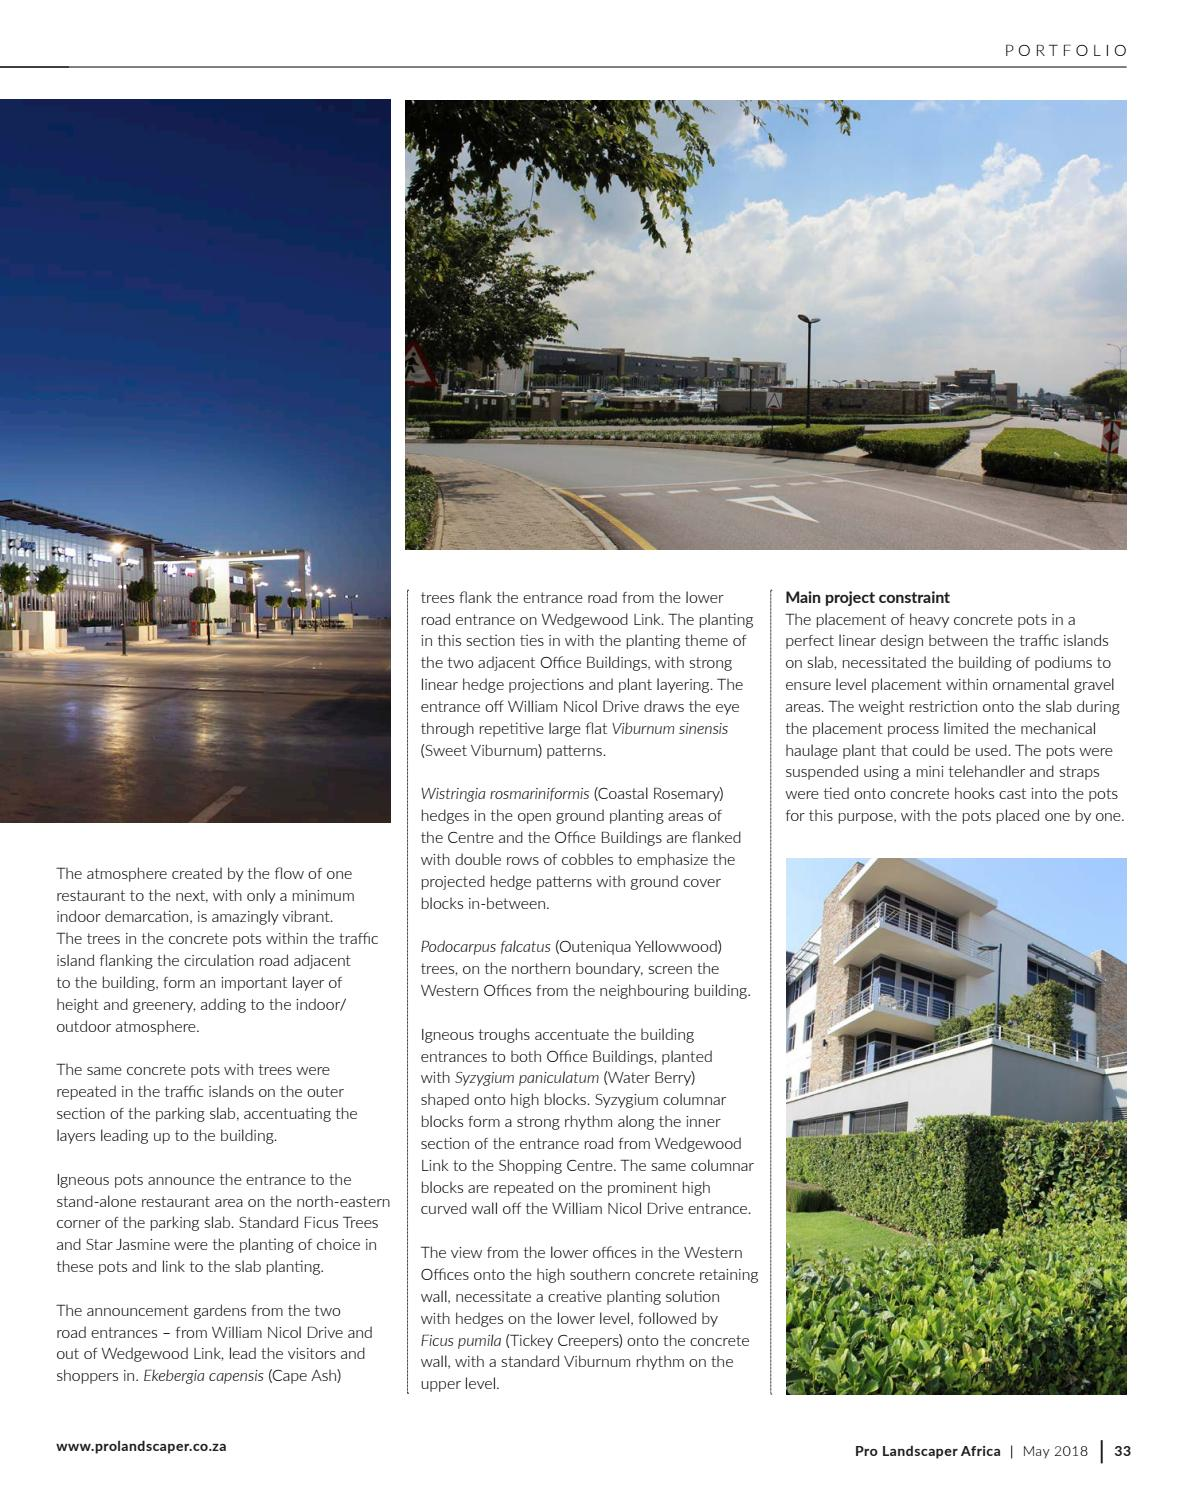 Pro Landscaper Africa May 2018 by Eljays44 - issuu